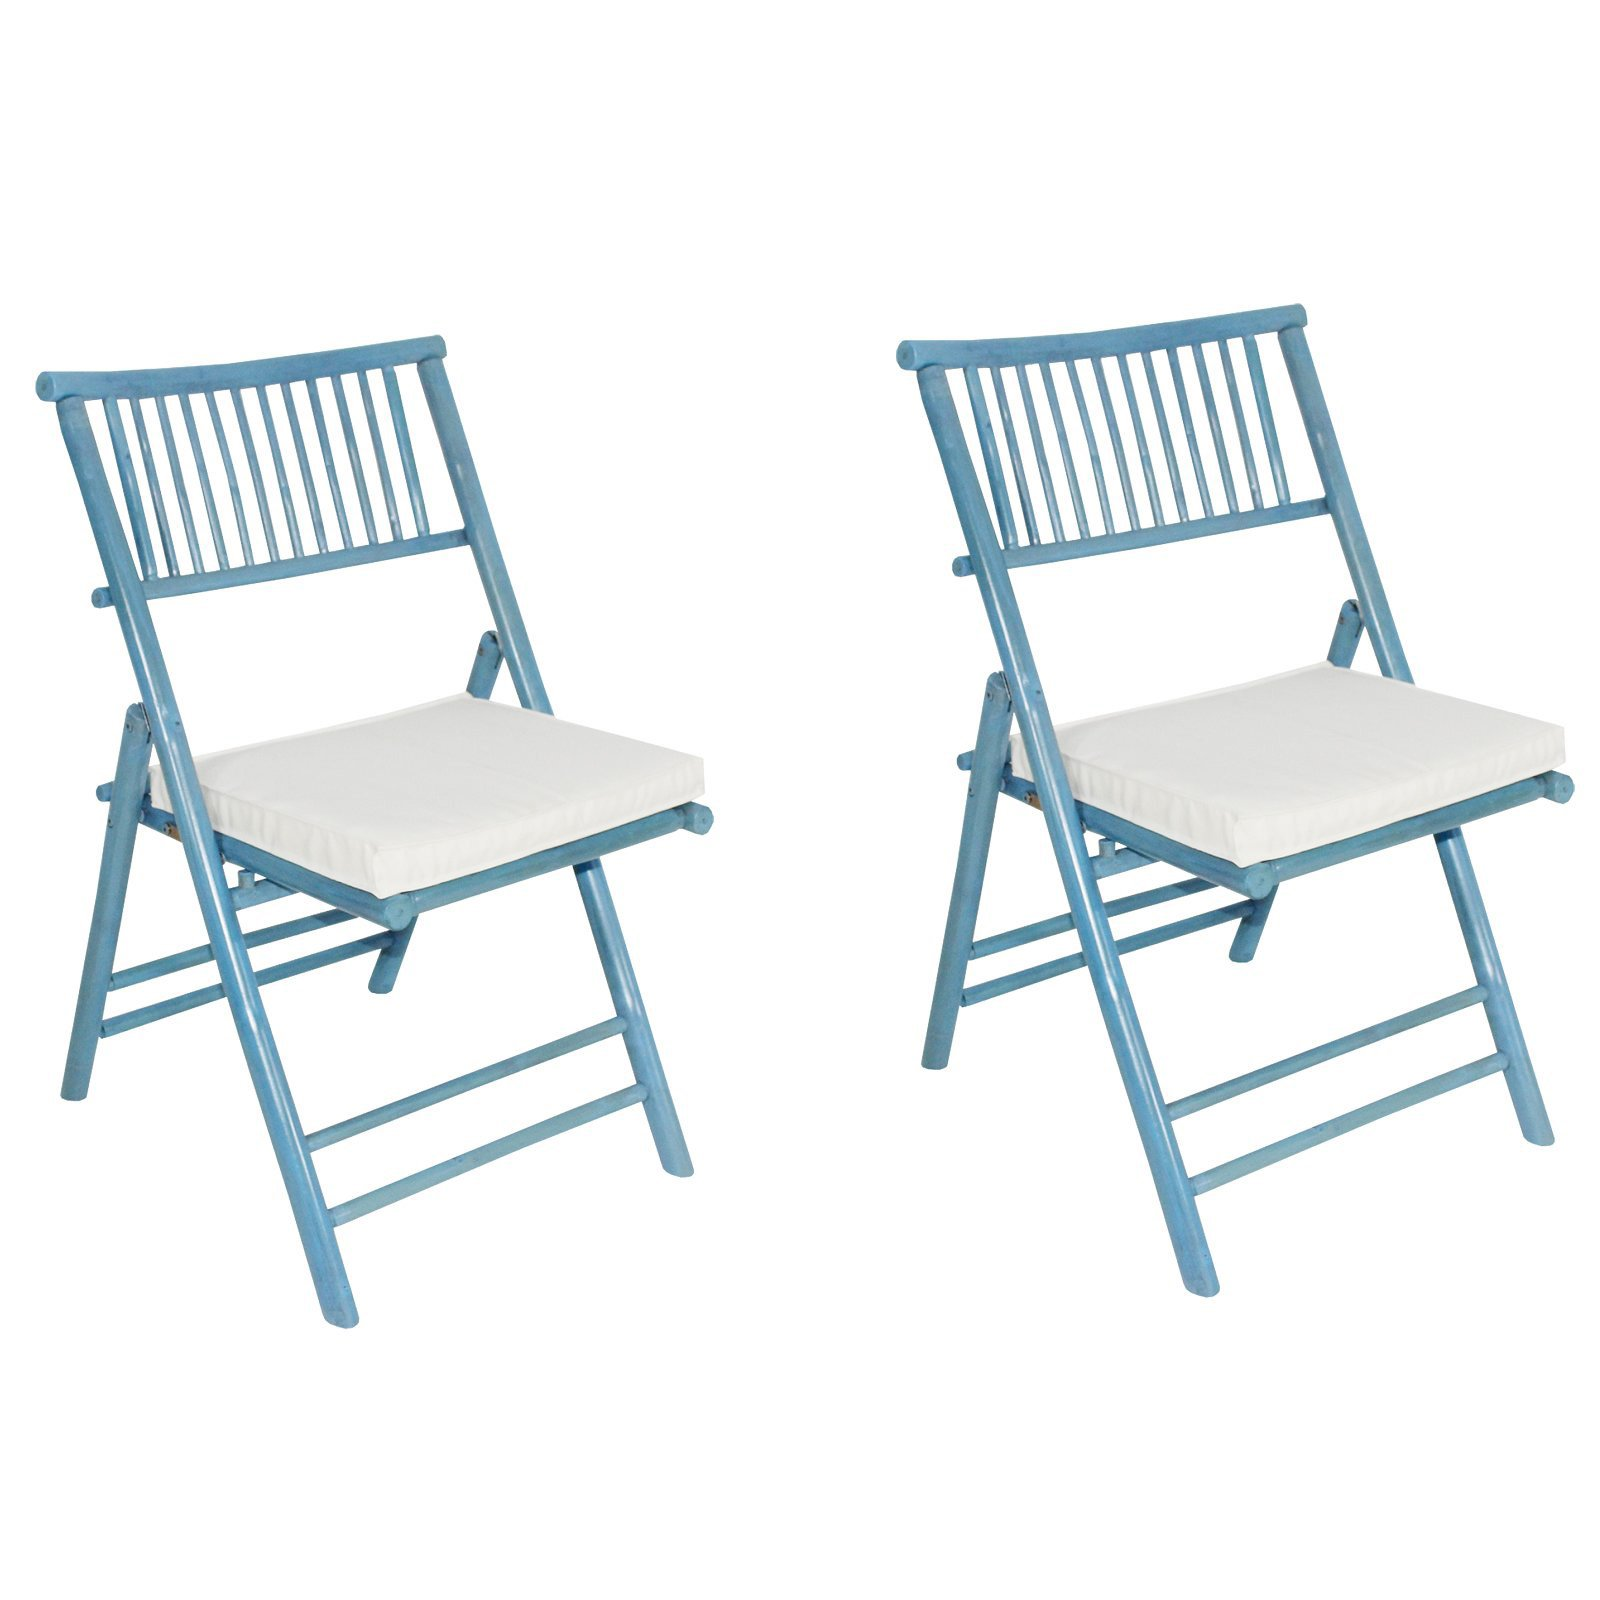 Phat Tommy Foldable Bamboo Chair With Cushions - Set of 2